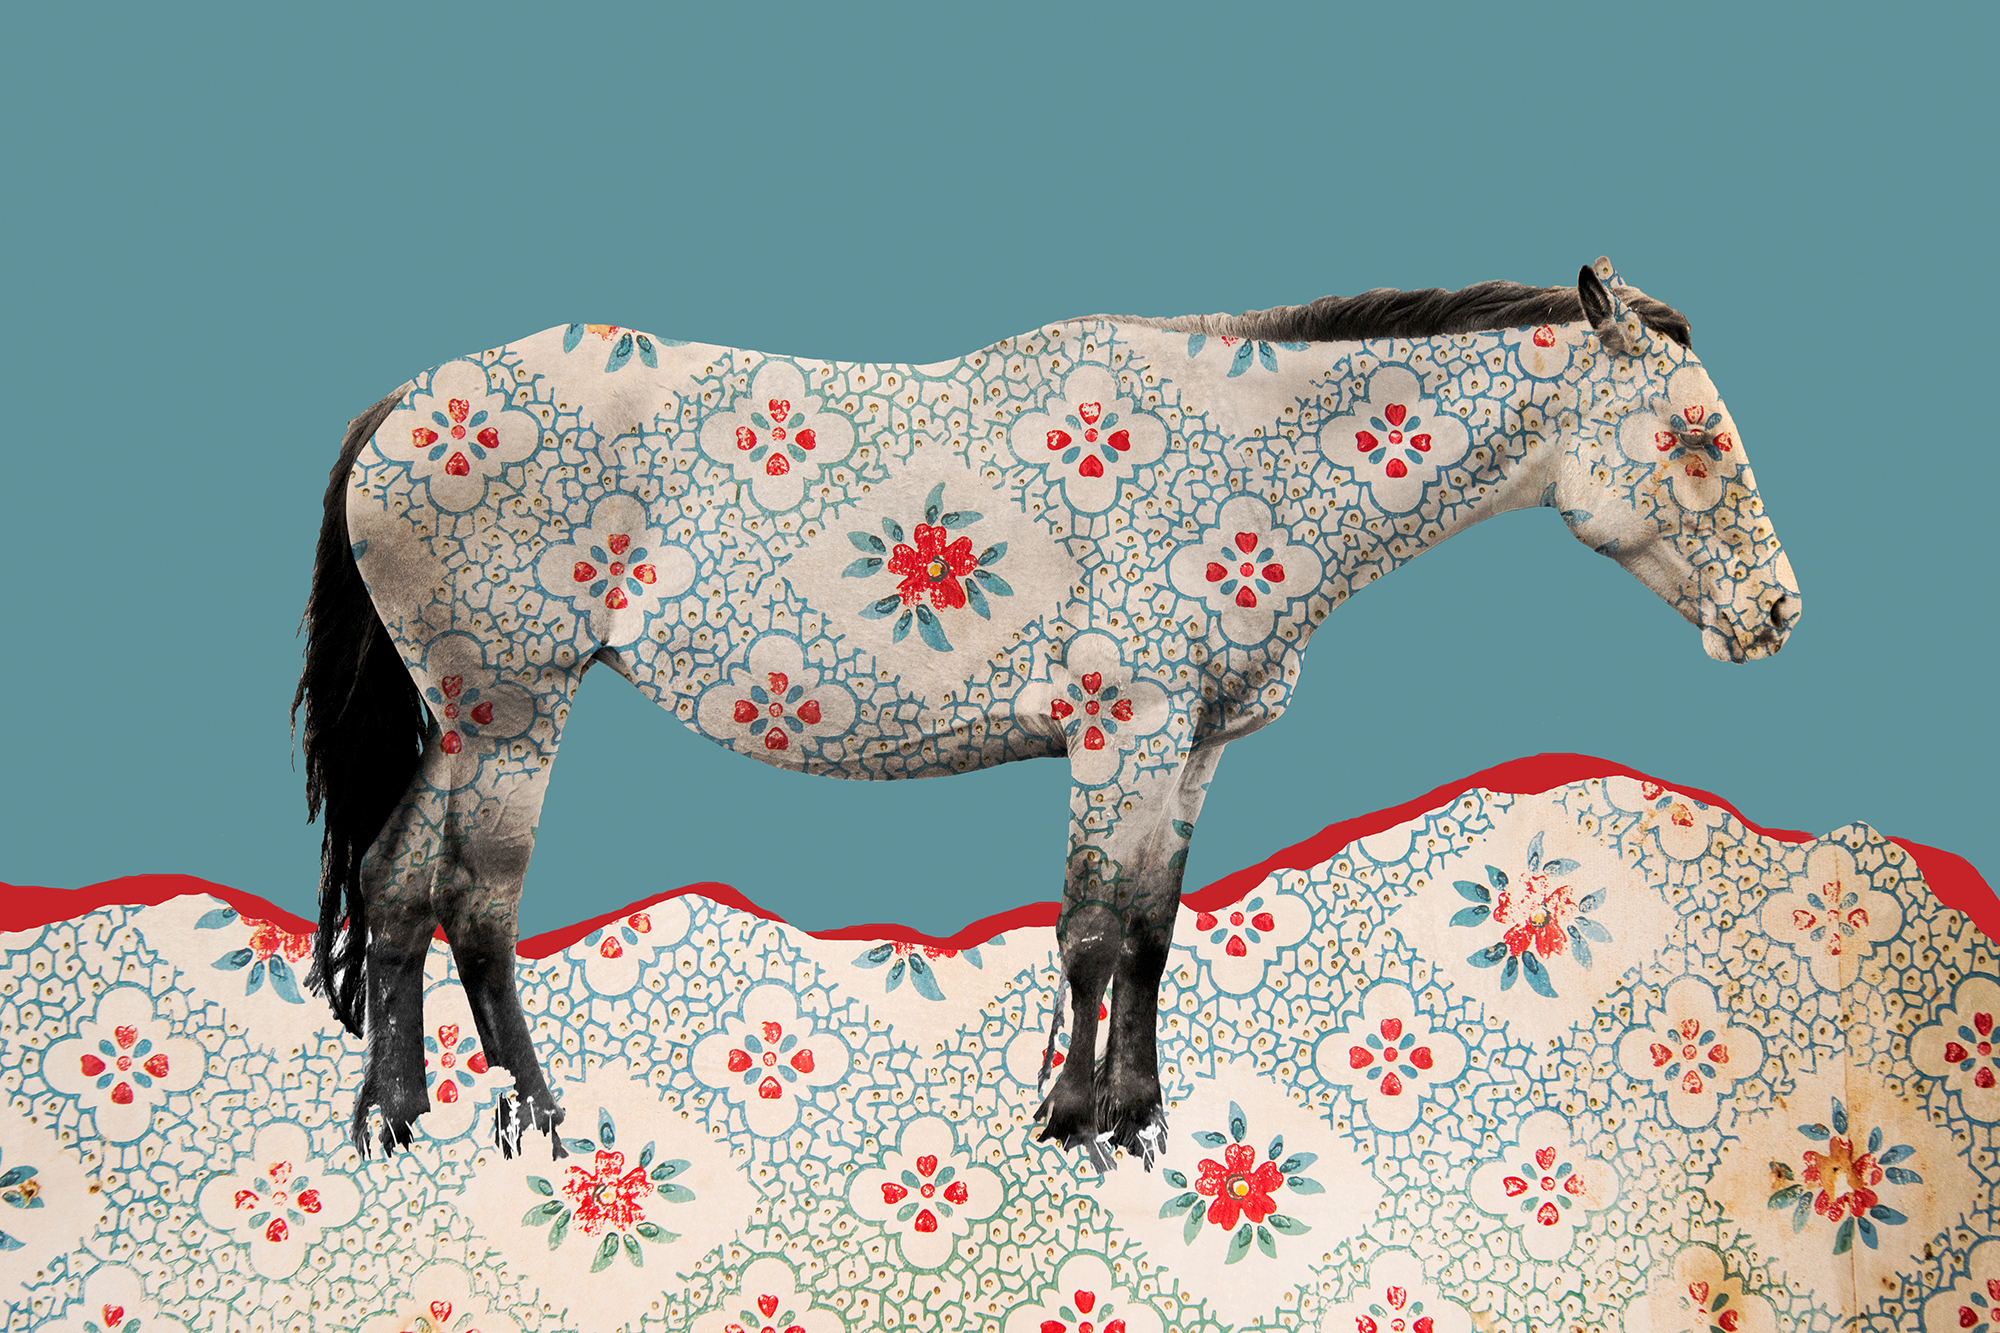 { Horse No. 16  } Pictured is a horse which was photographed in Southwest Montana on the edge of the Little Bighorn National Battlefield. The pattern laid over it is a photograph of wallpaper from an abandoned homestead on the Northern prairie of Montana.